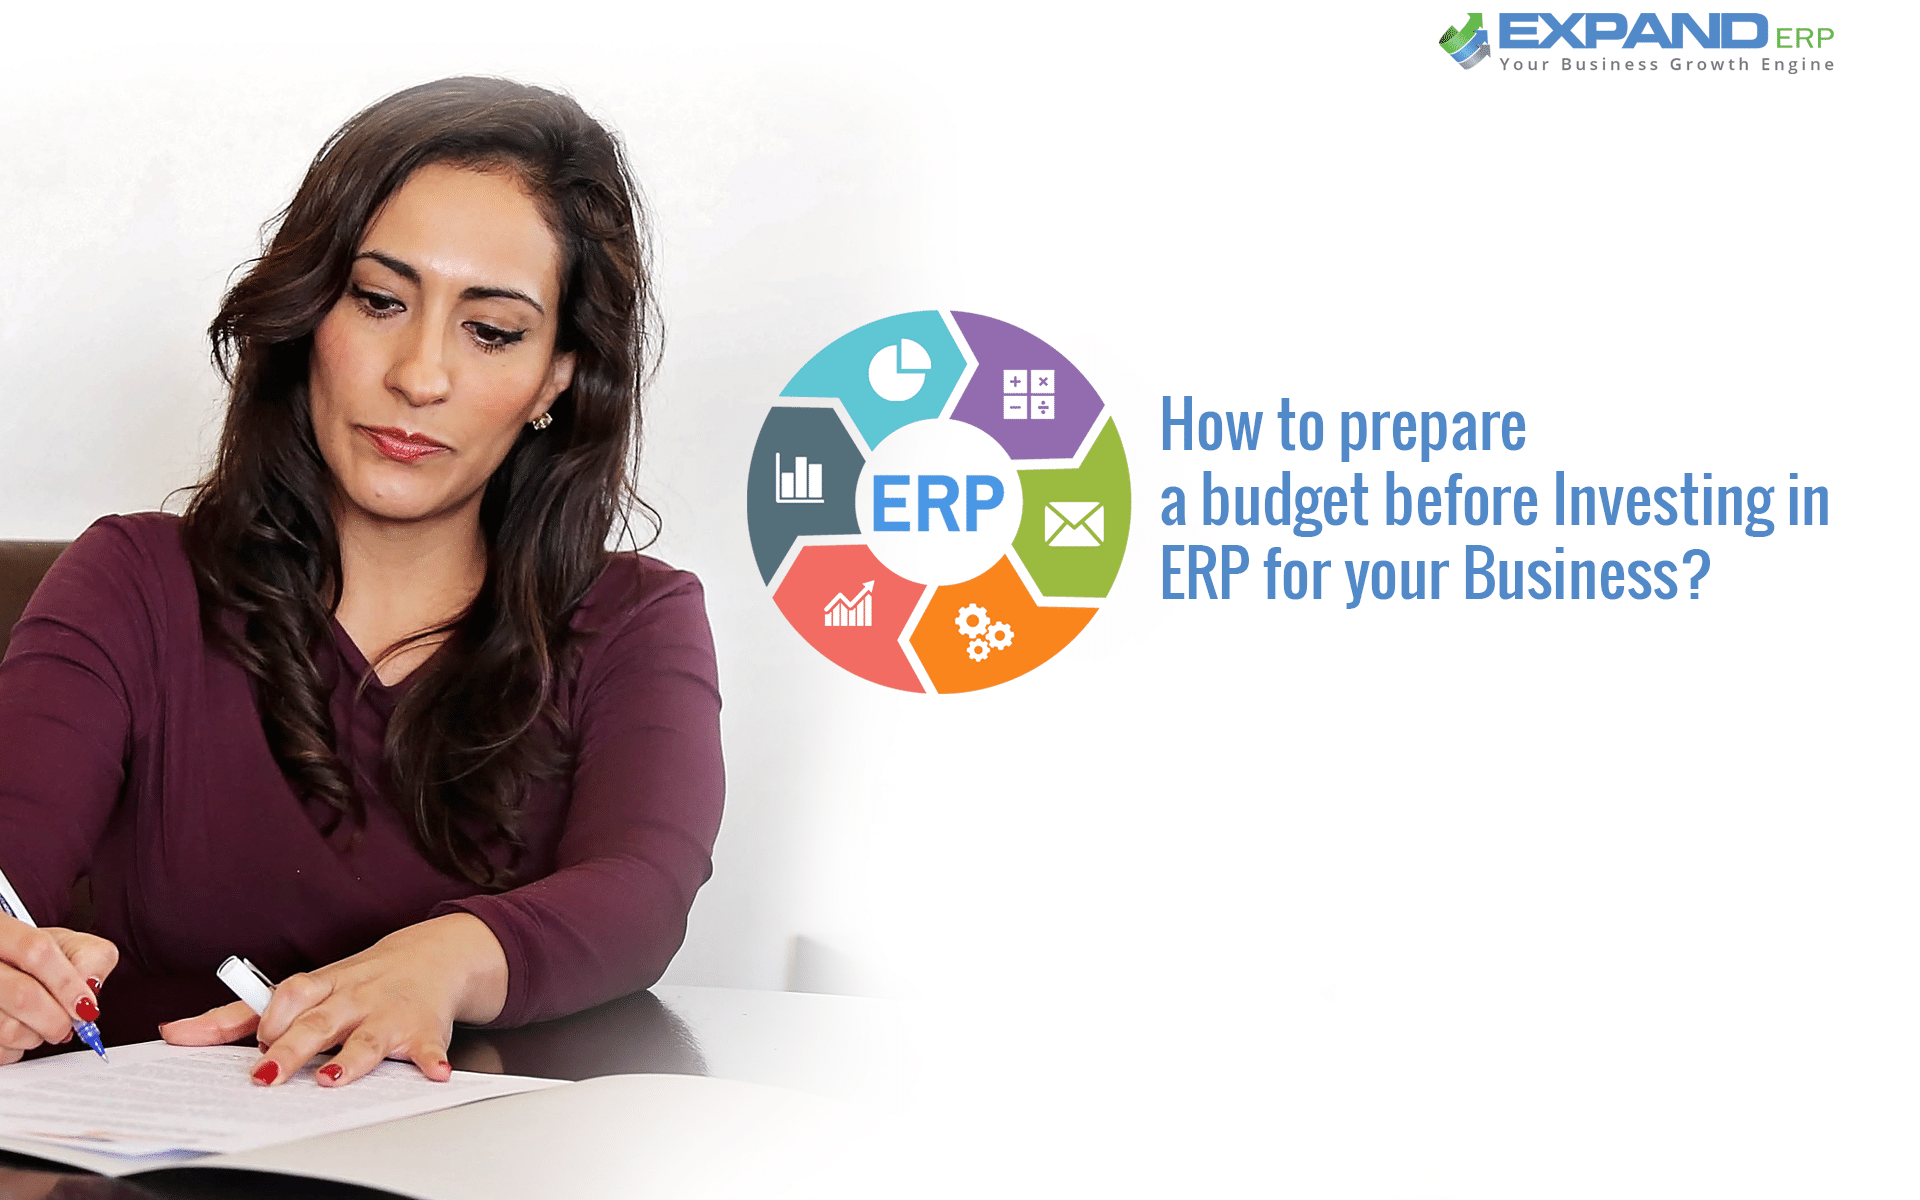 How to prepare a budget before investing in ERP for business